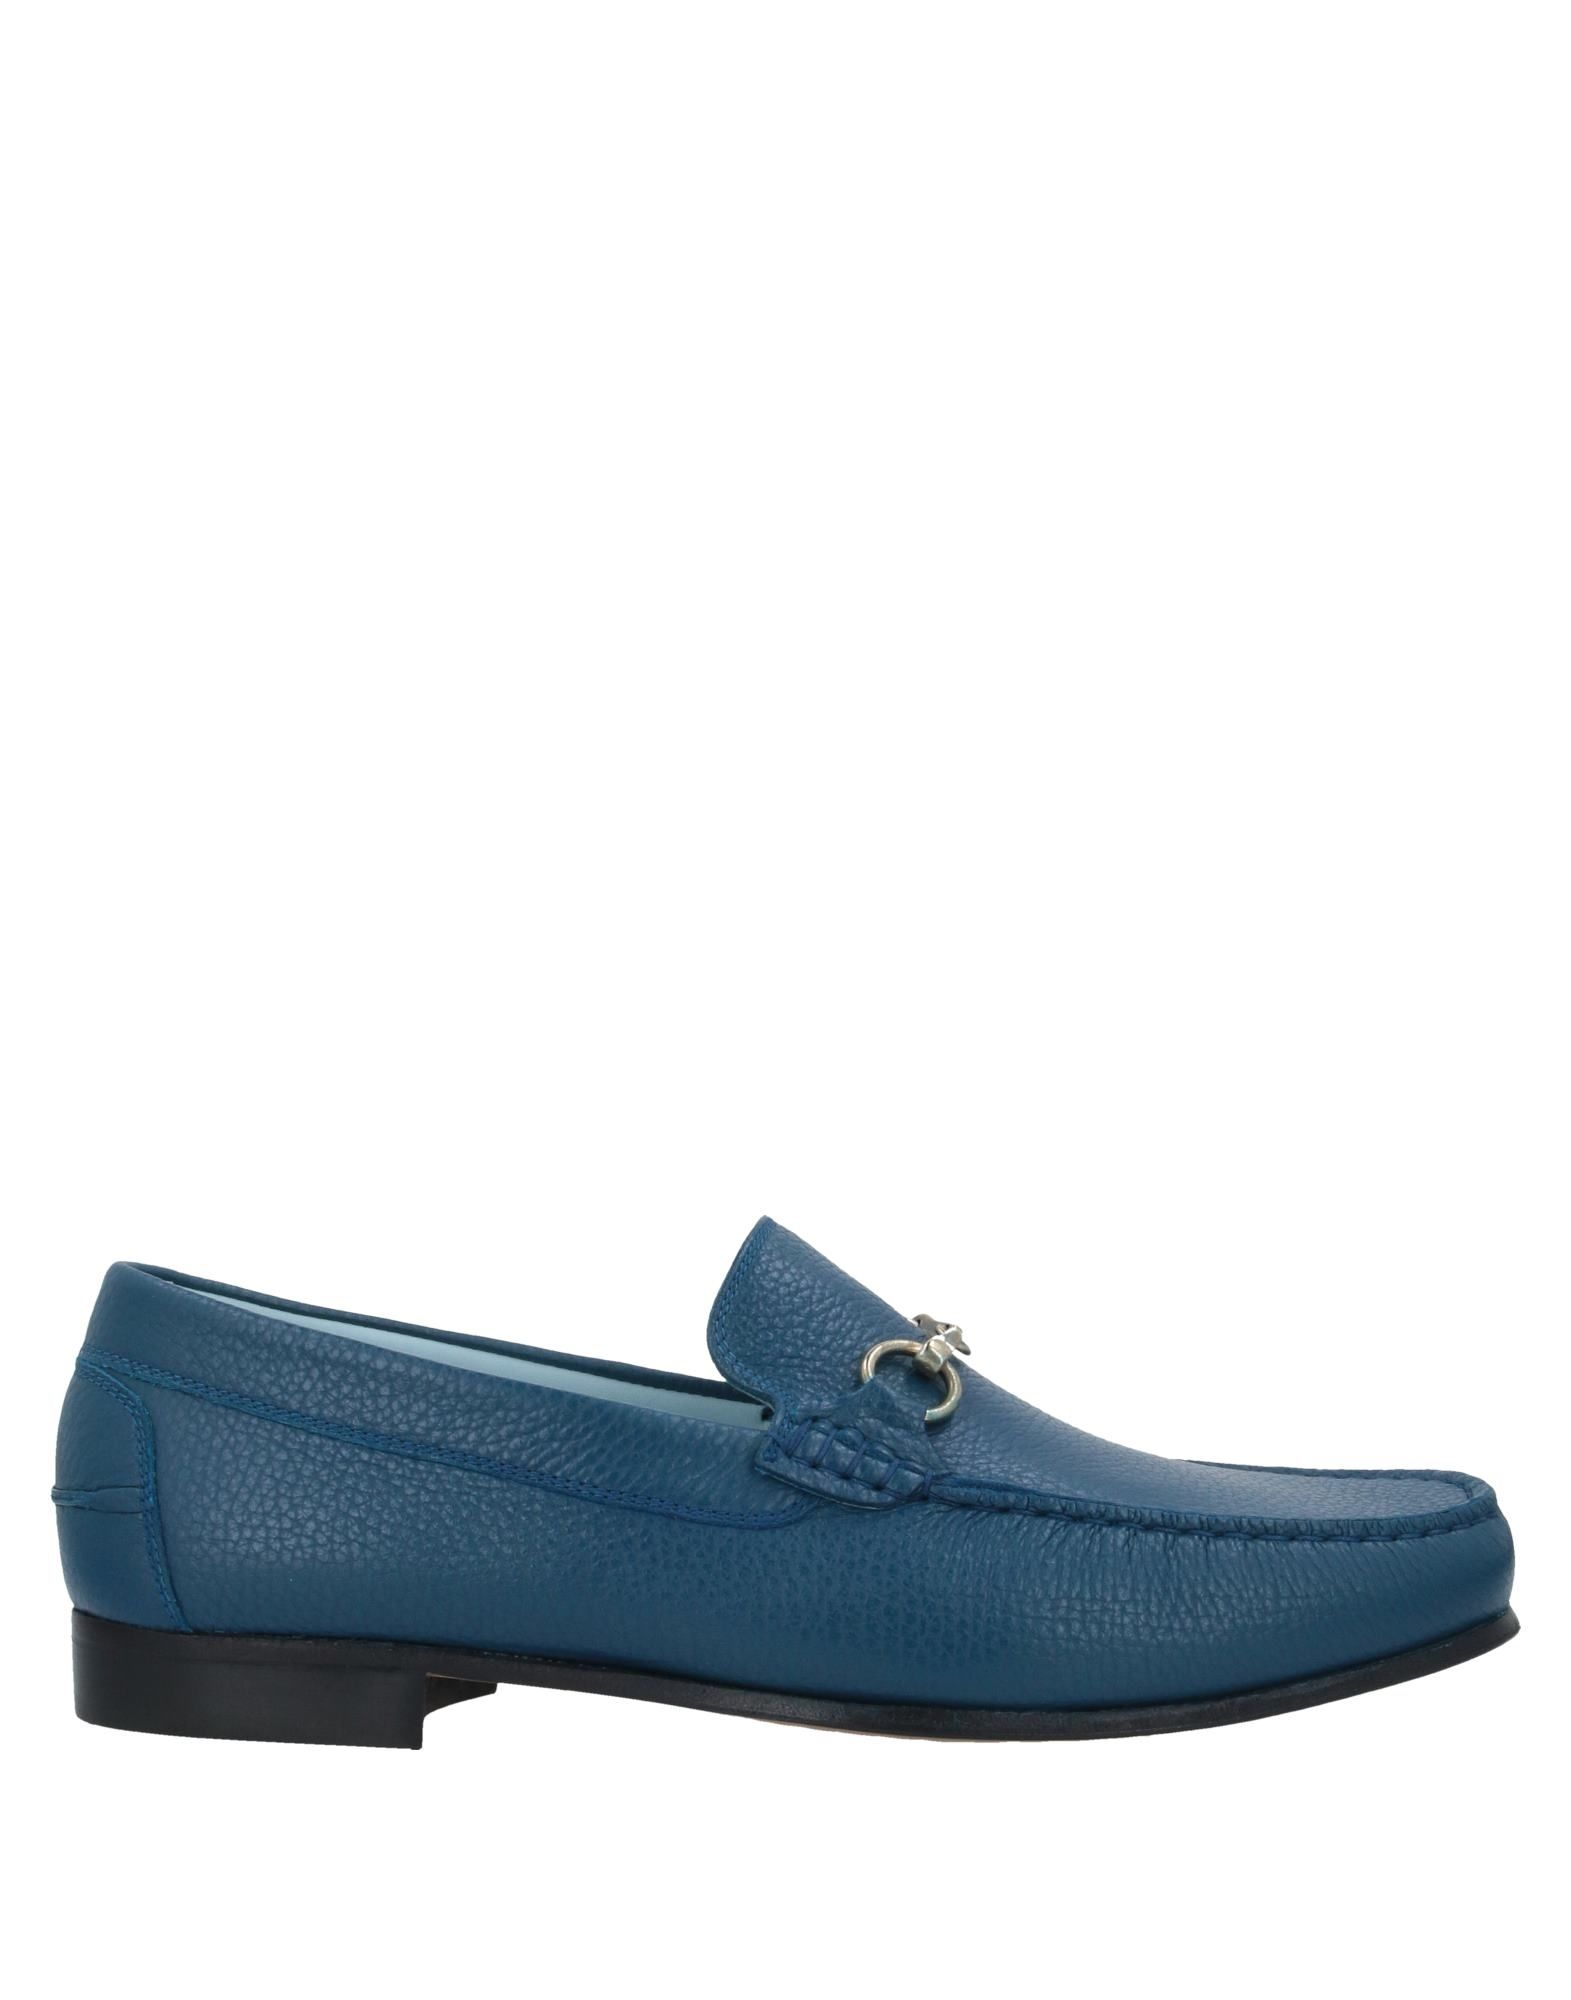 LIVERPOOL Loafers. textured leather, metal applications, solid color, round toeline, flat, leather lining, leather/rubber sole, contains non-textile parts of animal origin. Calfskin